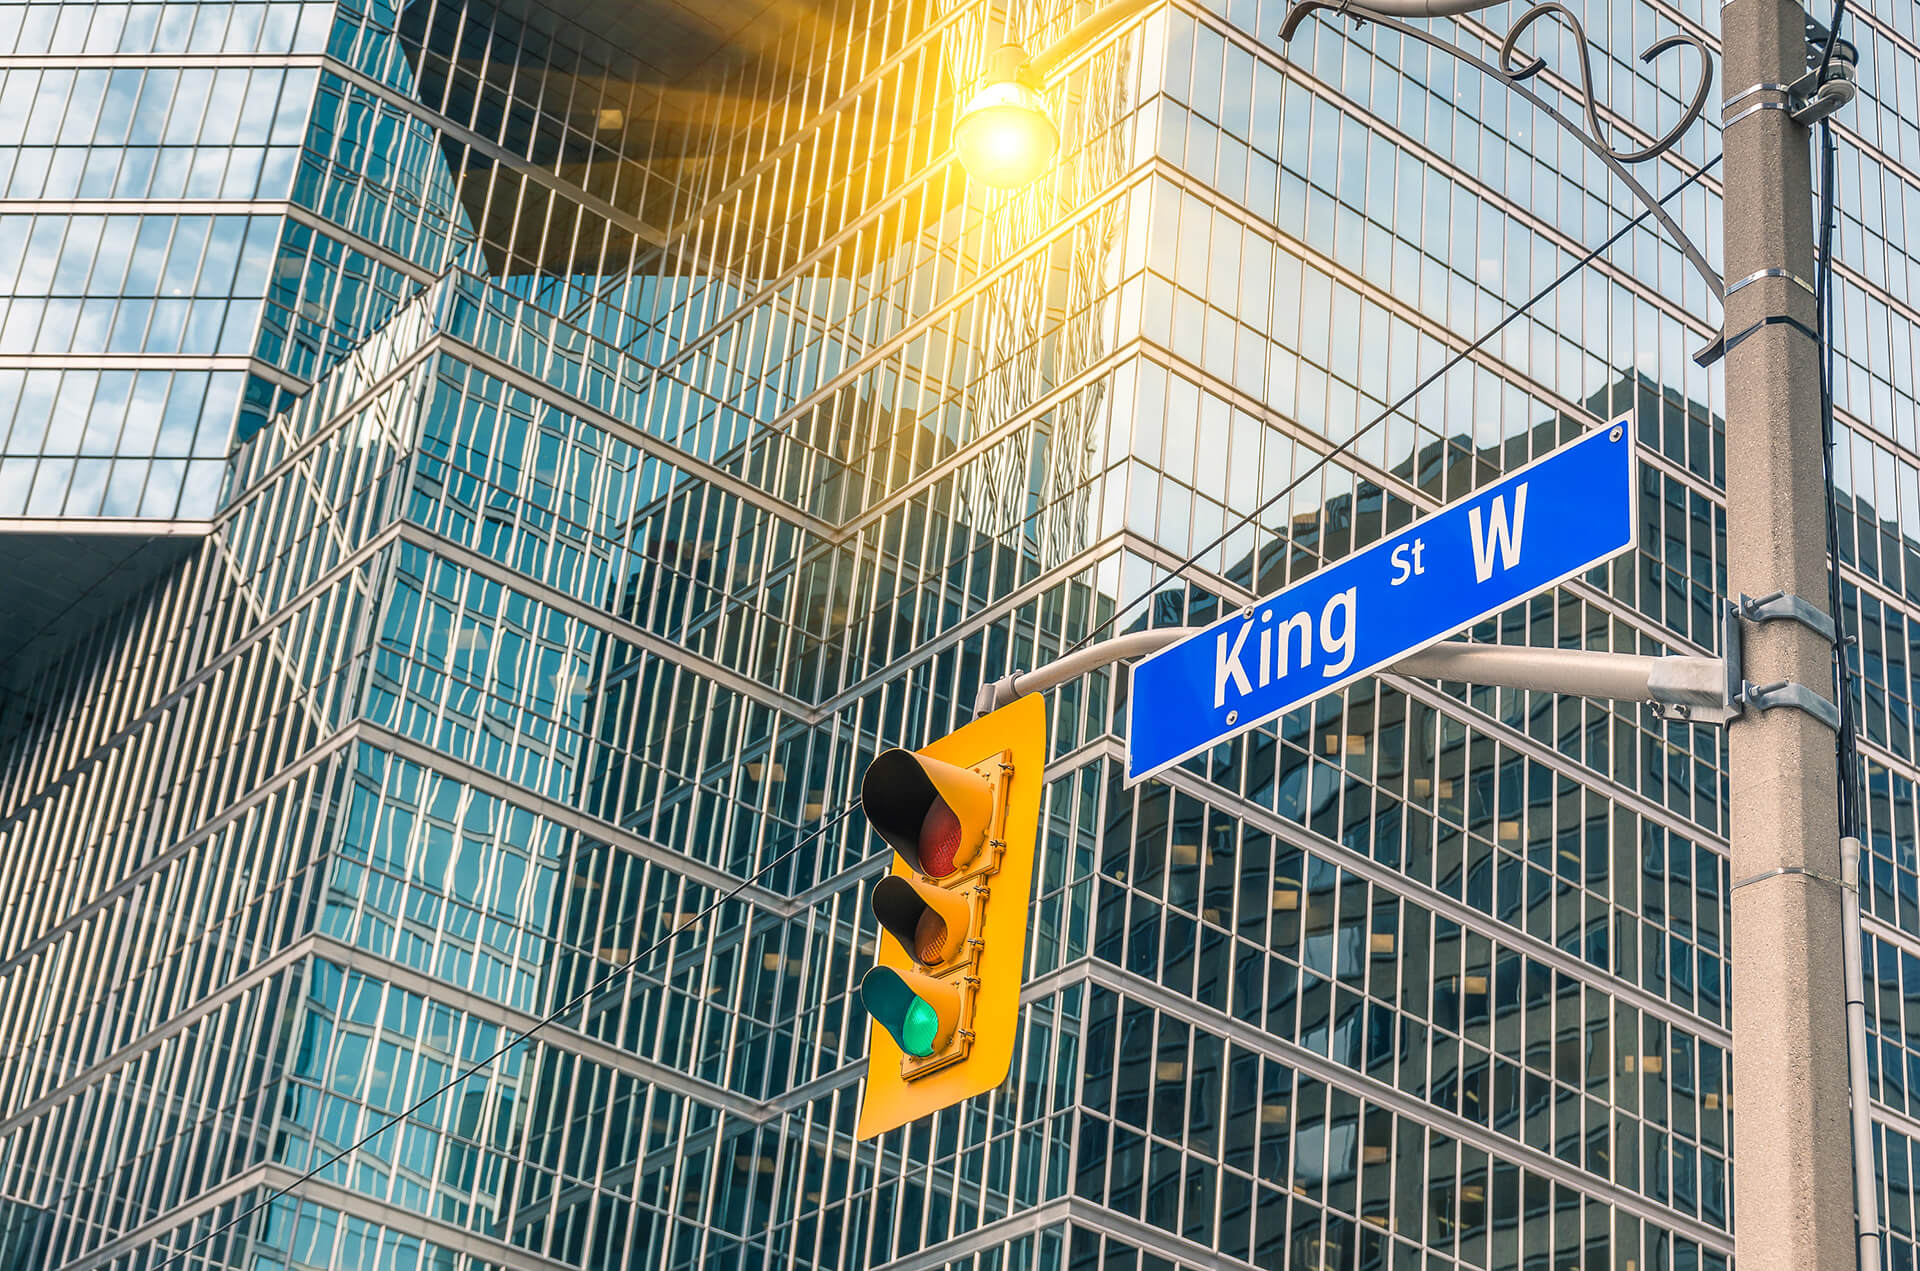 Photo of King street sign.